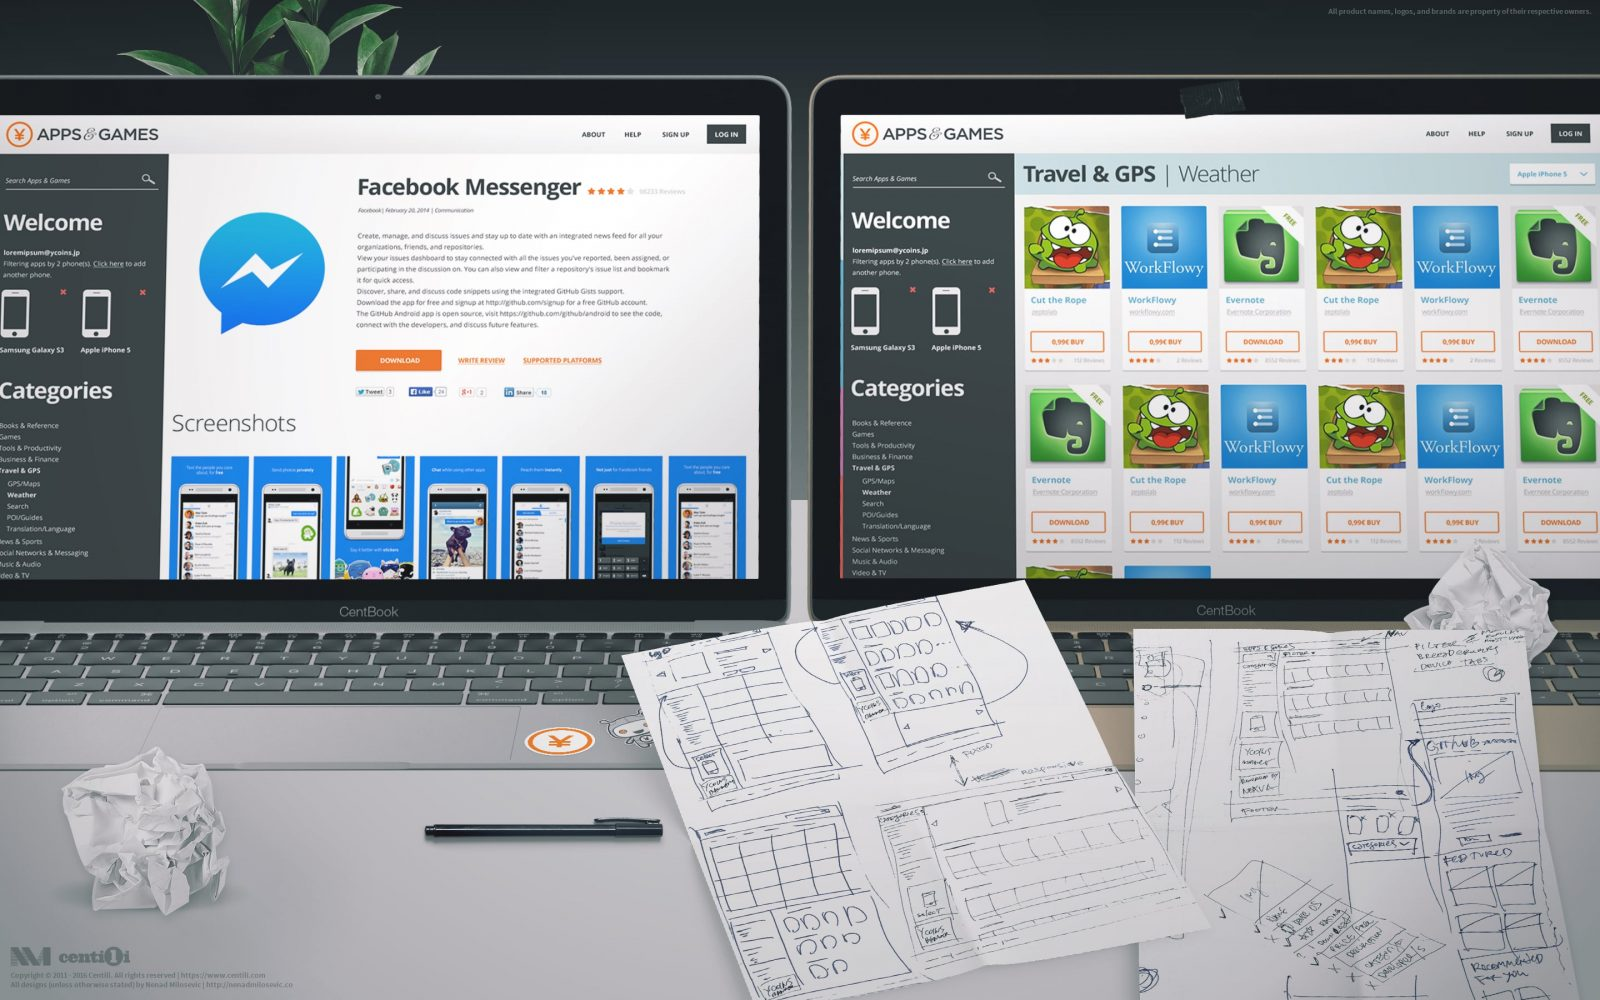 My app store design. So sad this never saw the light of day. (╯︵╰,)